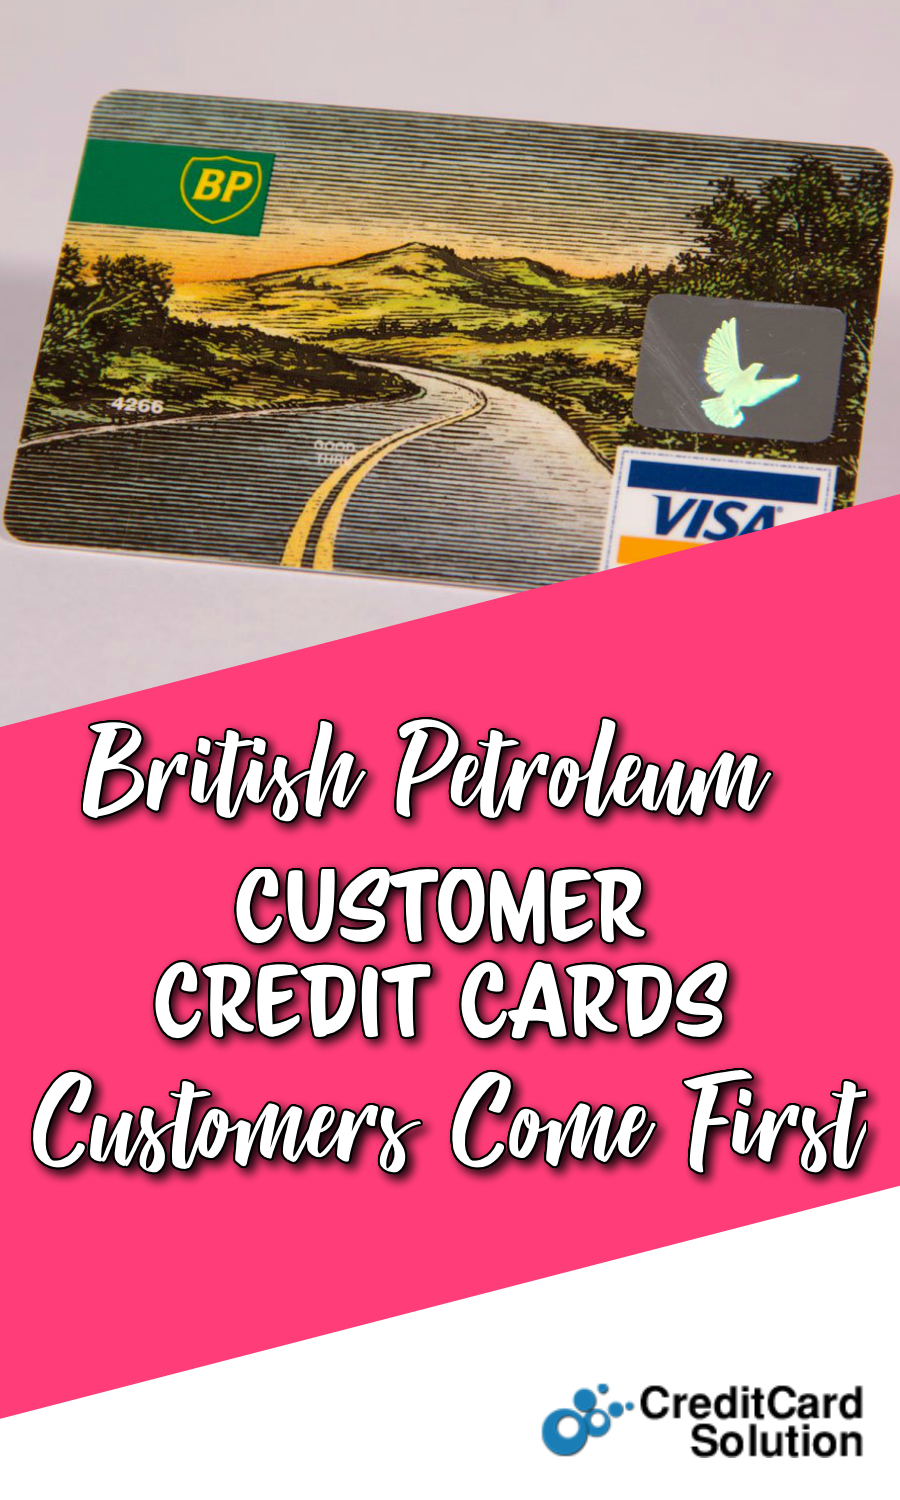 British Petroleum Customer Credit Cards: Customers Come First